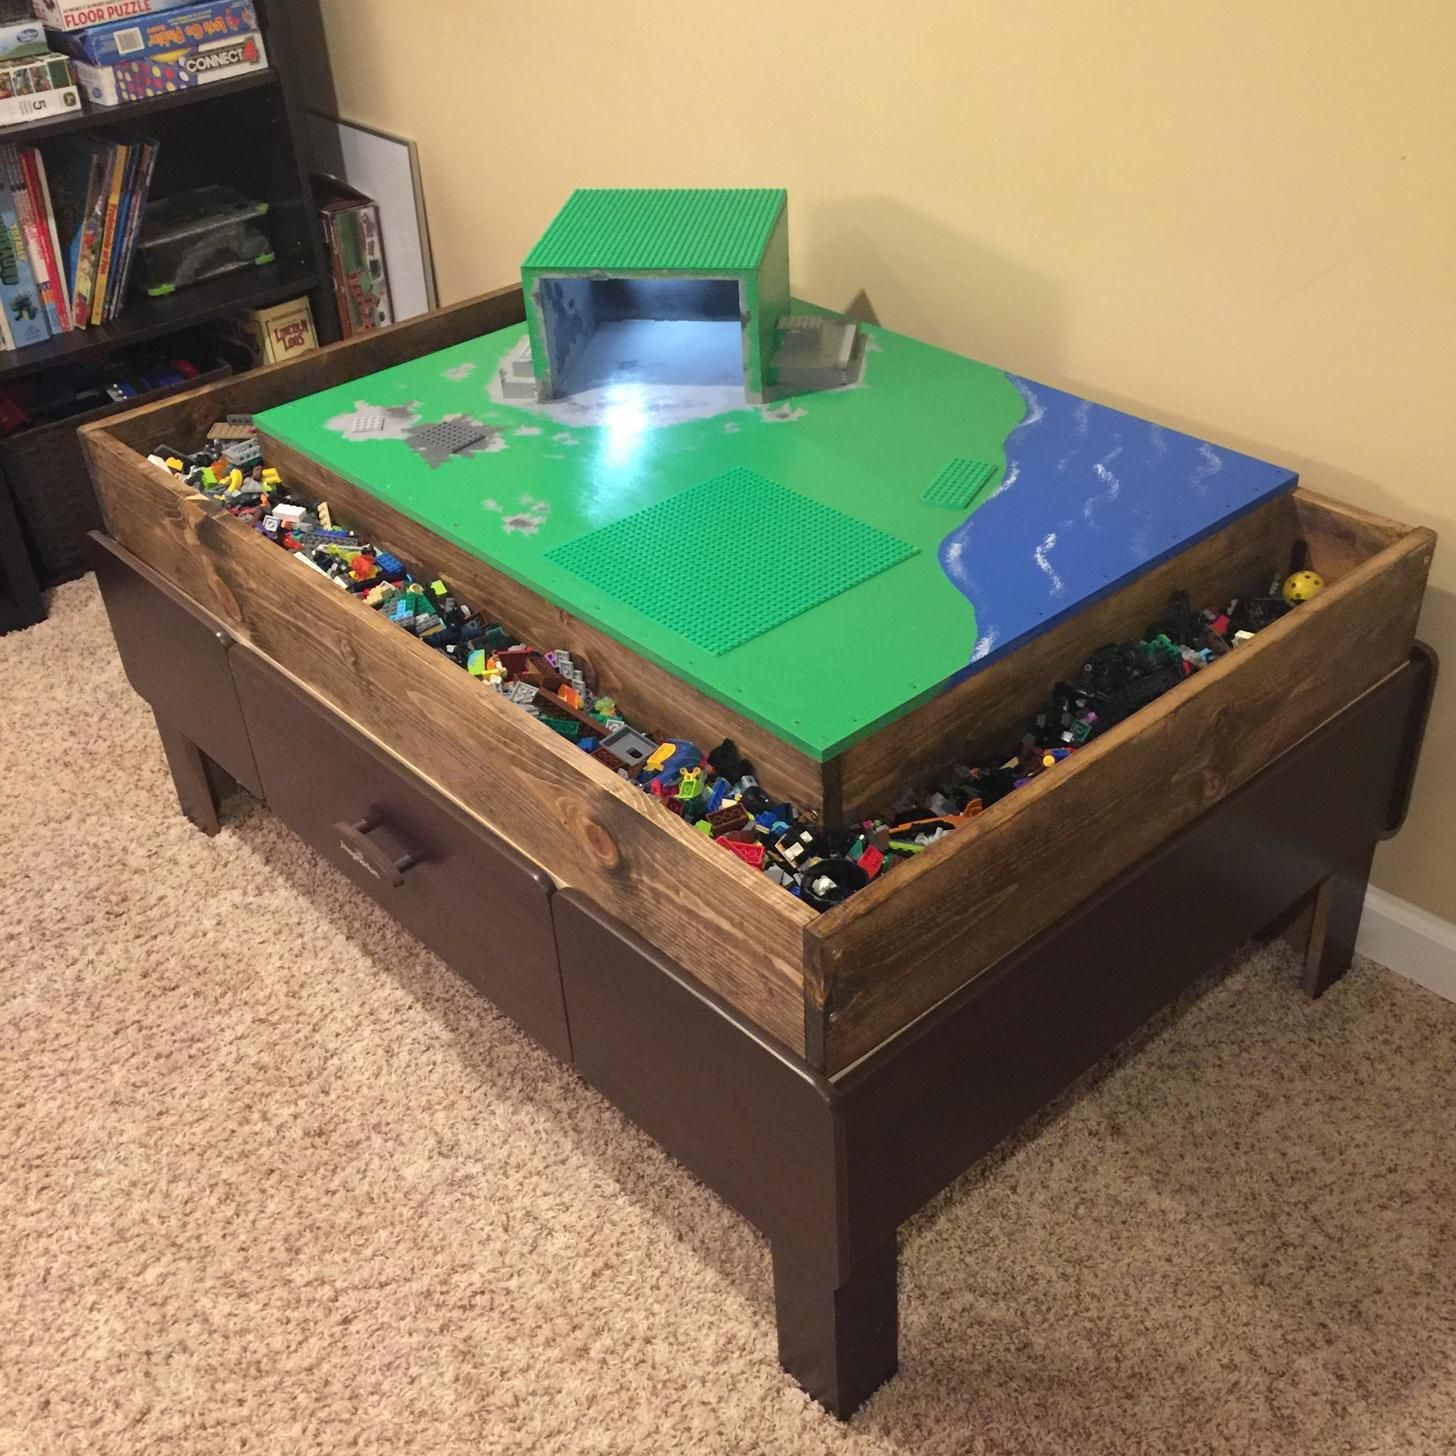 Train Table To Lego Table Conversion In 2019 Lego Table